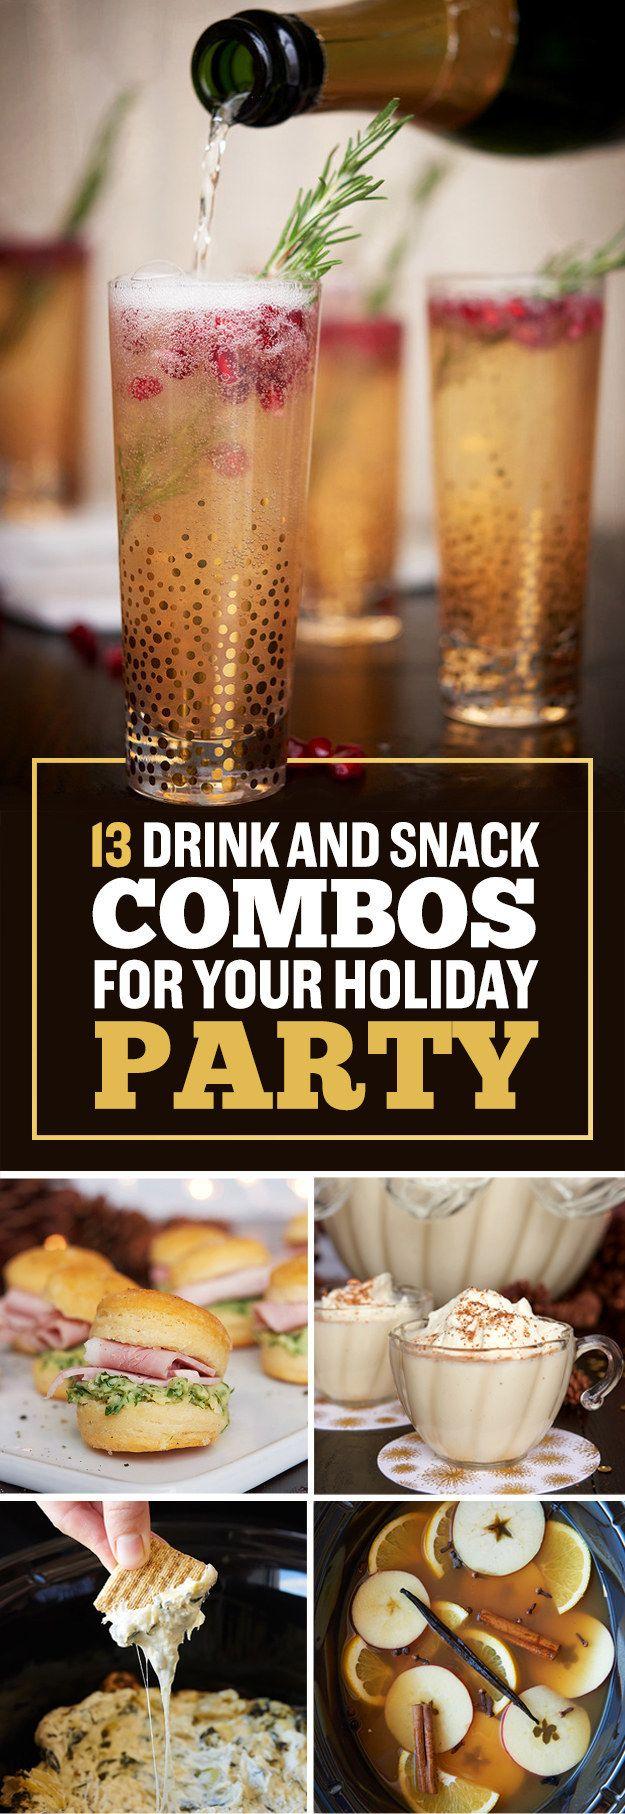 All the drink and snack combos you'll ever need.